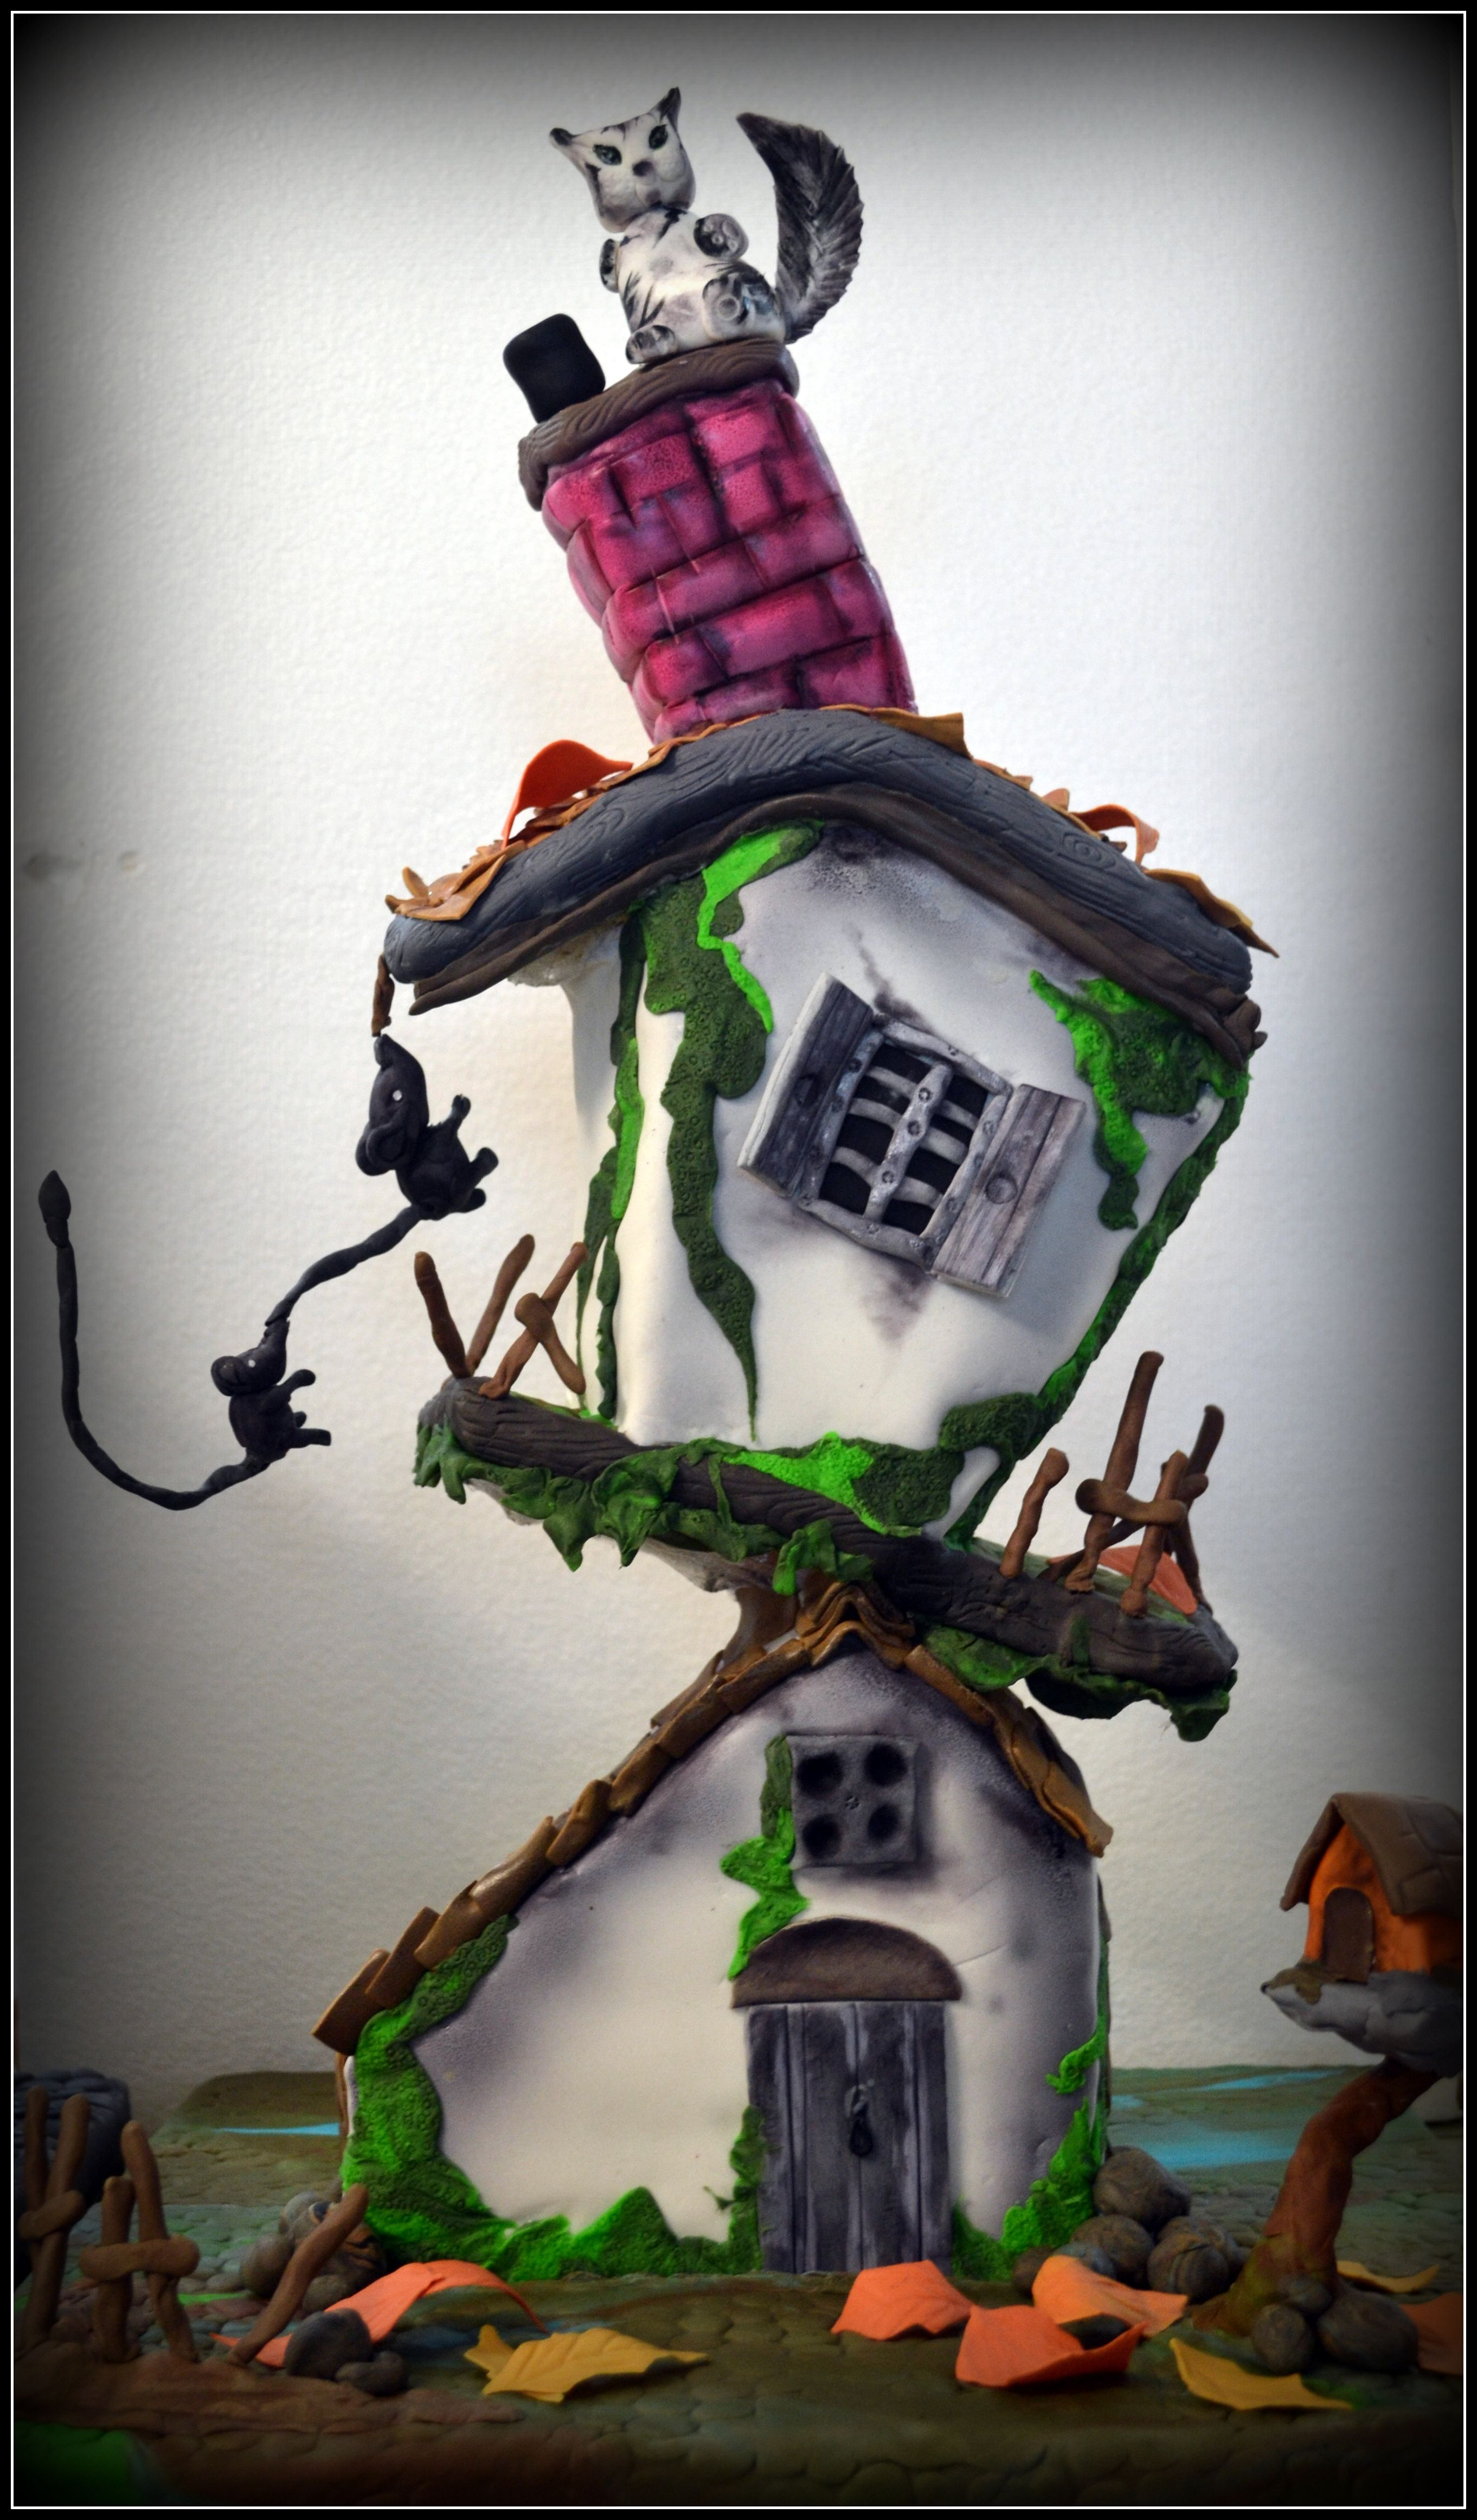 whimsical cake crafted by students at 32 degree - cakes set at steep angles